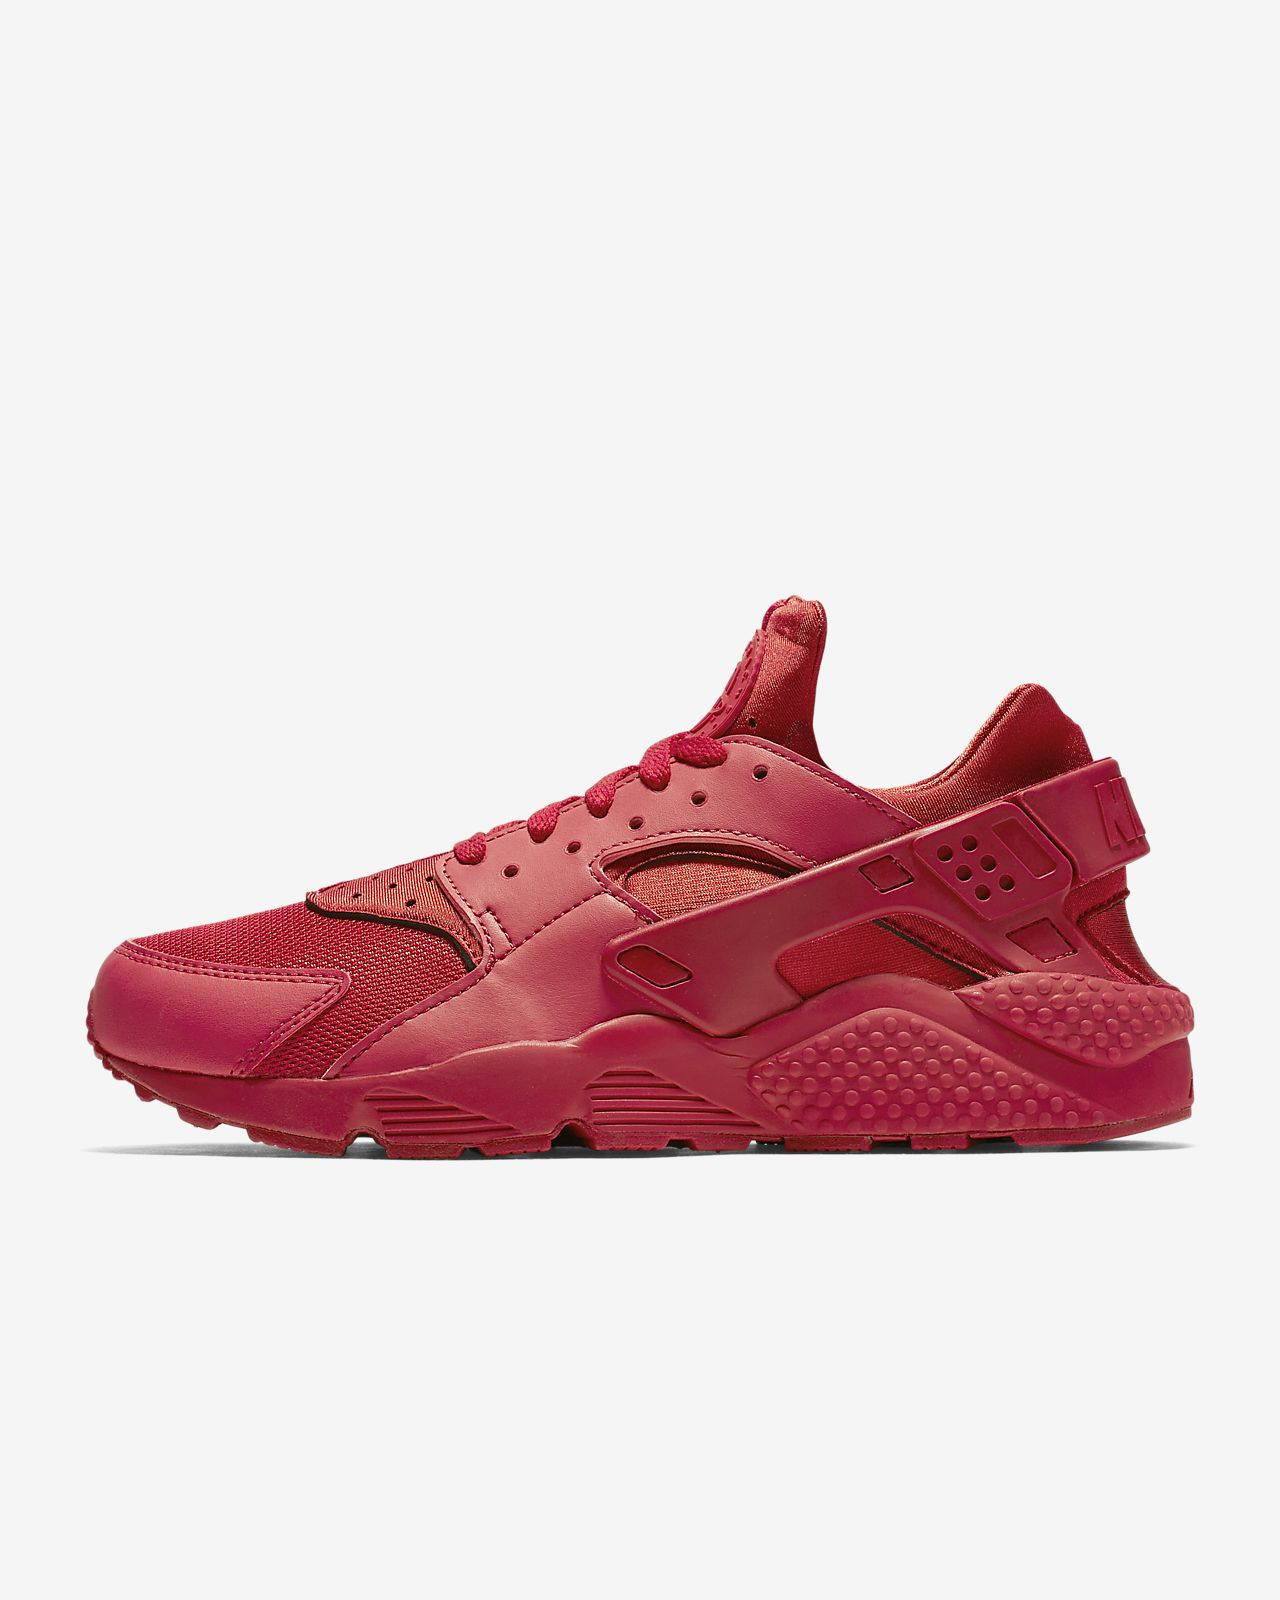 new product 17ed3 d06b2 ... Nike Air Huarache Men s Shoe